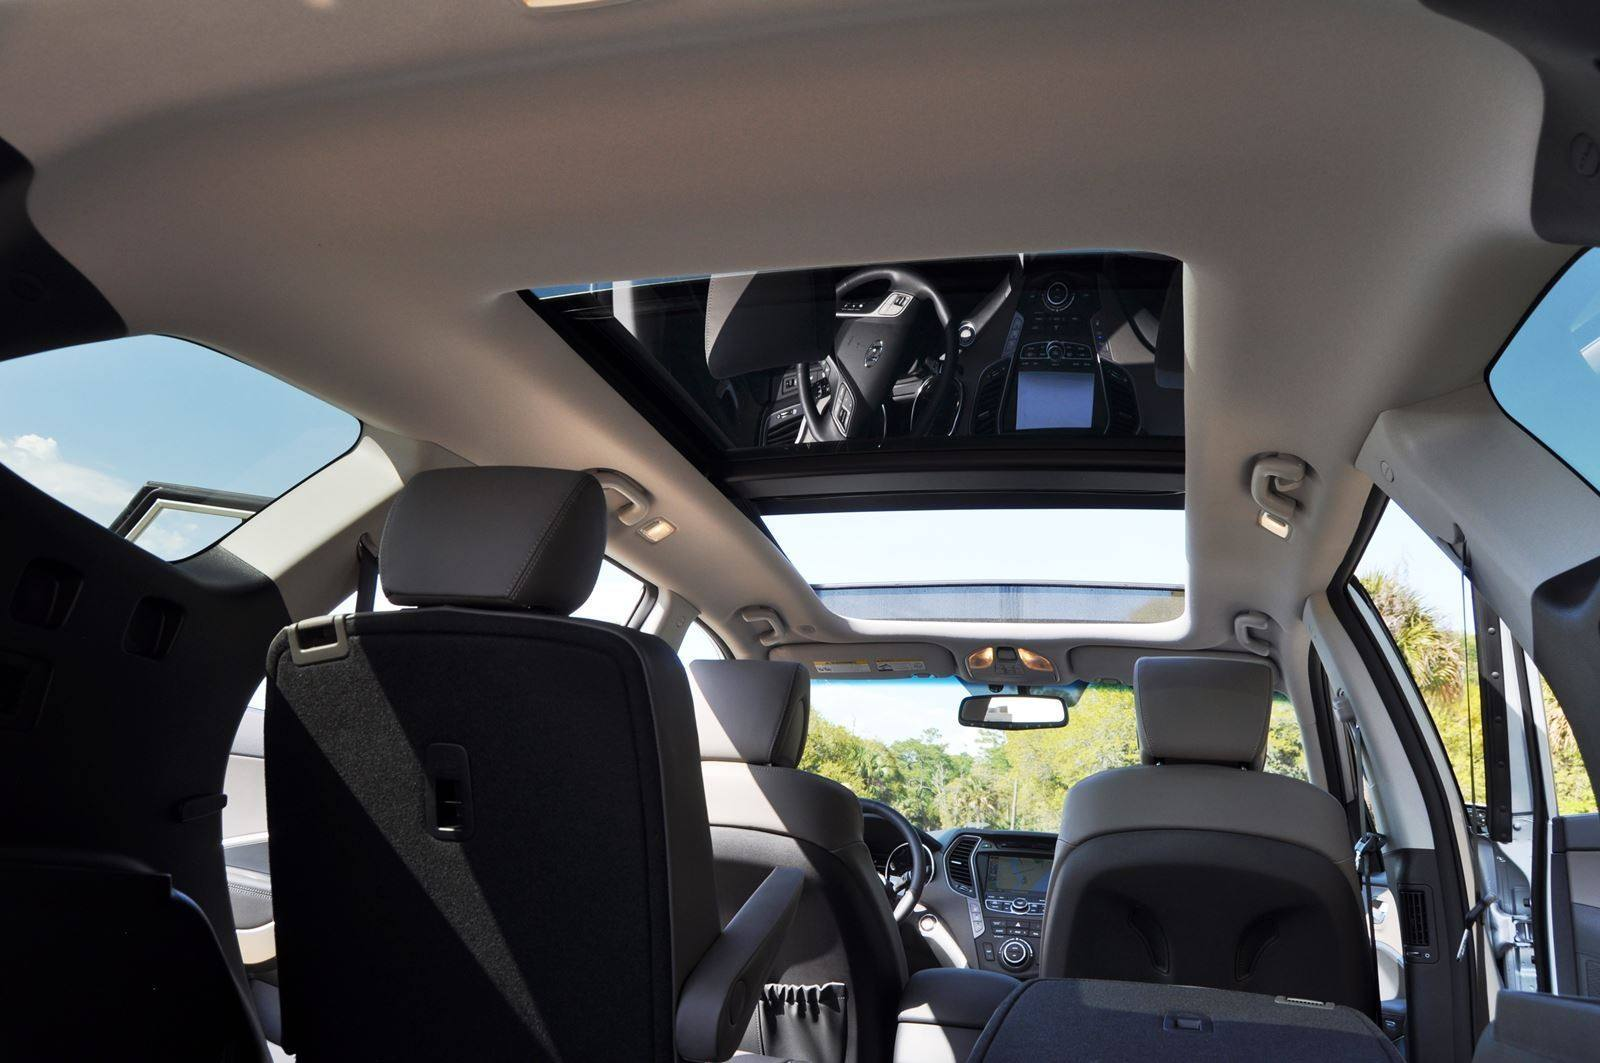 2015 Hyundai Santa Fe LWB Ultimate - Interior Photos 14